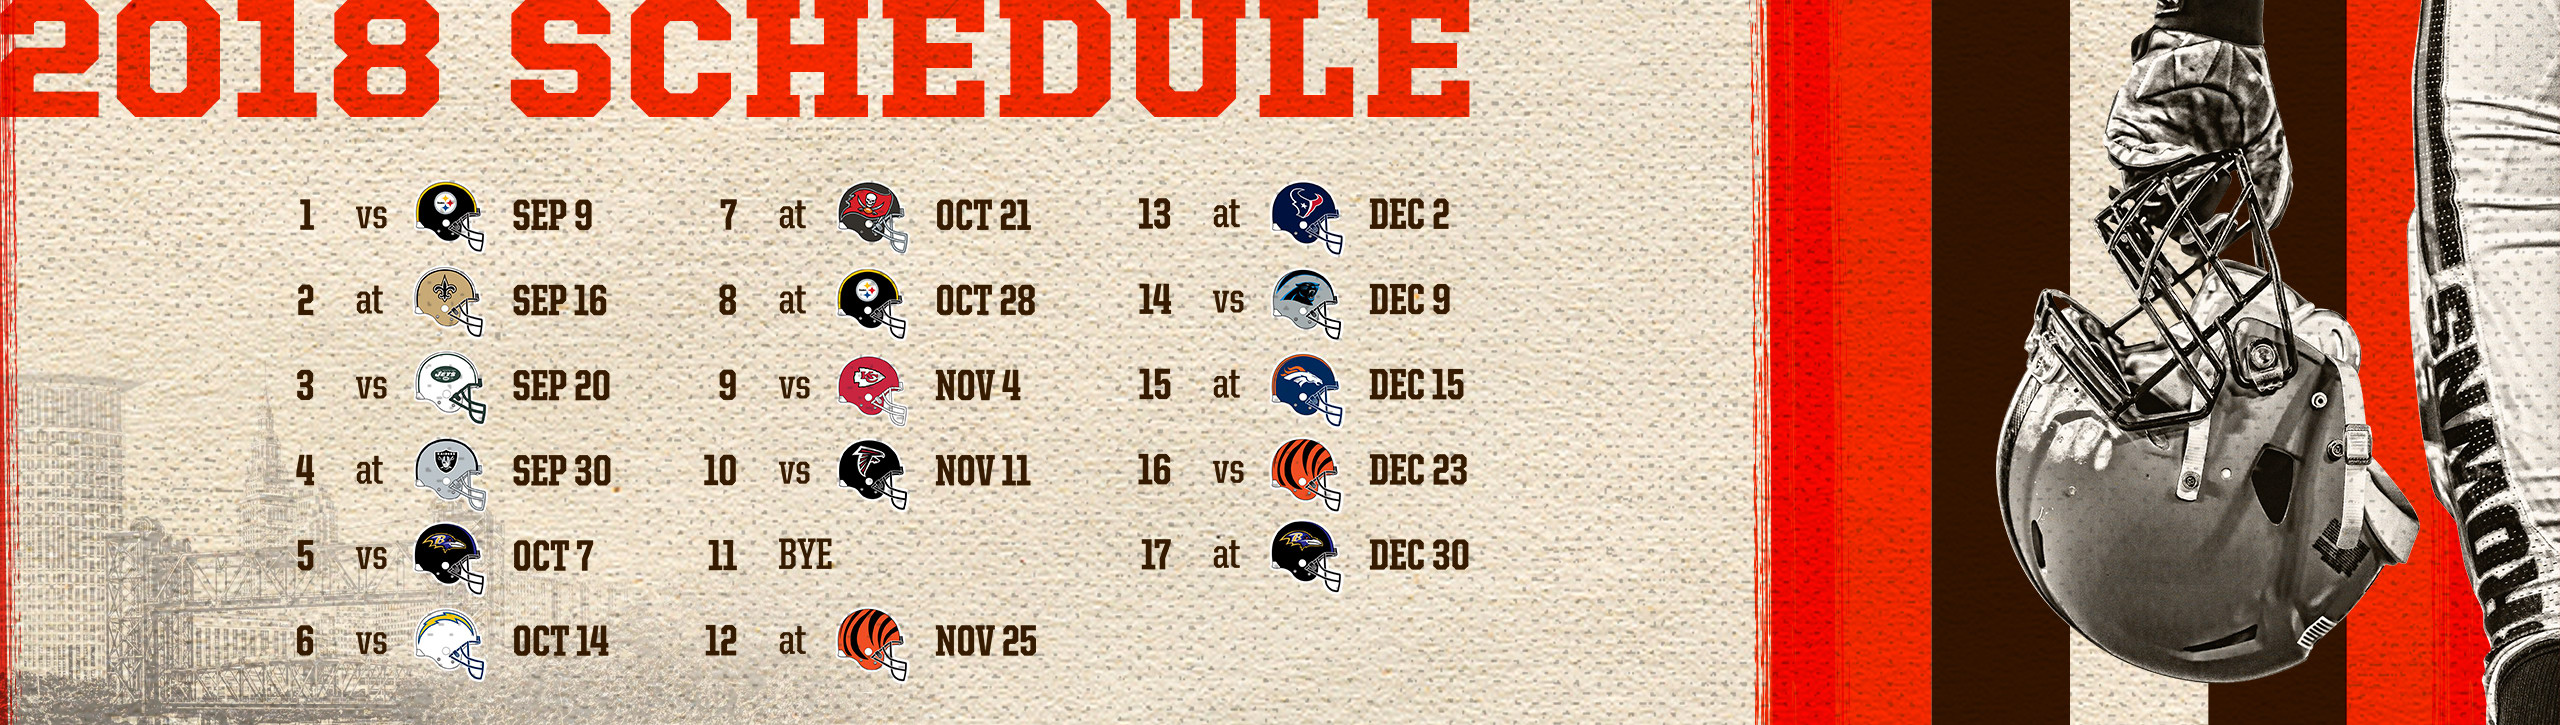 Browns schedule cleveland browns clevelandbrowns publicscrutiny Image collections